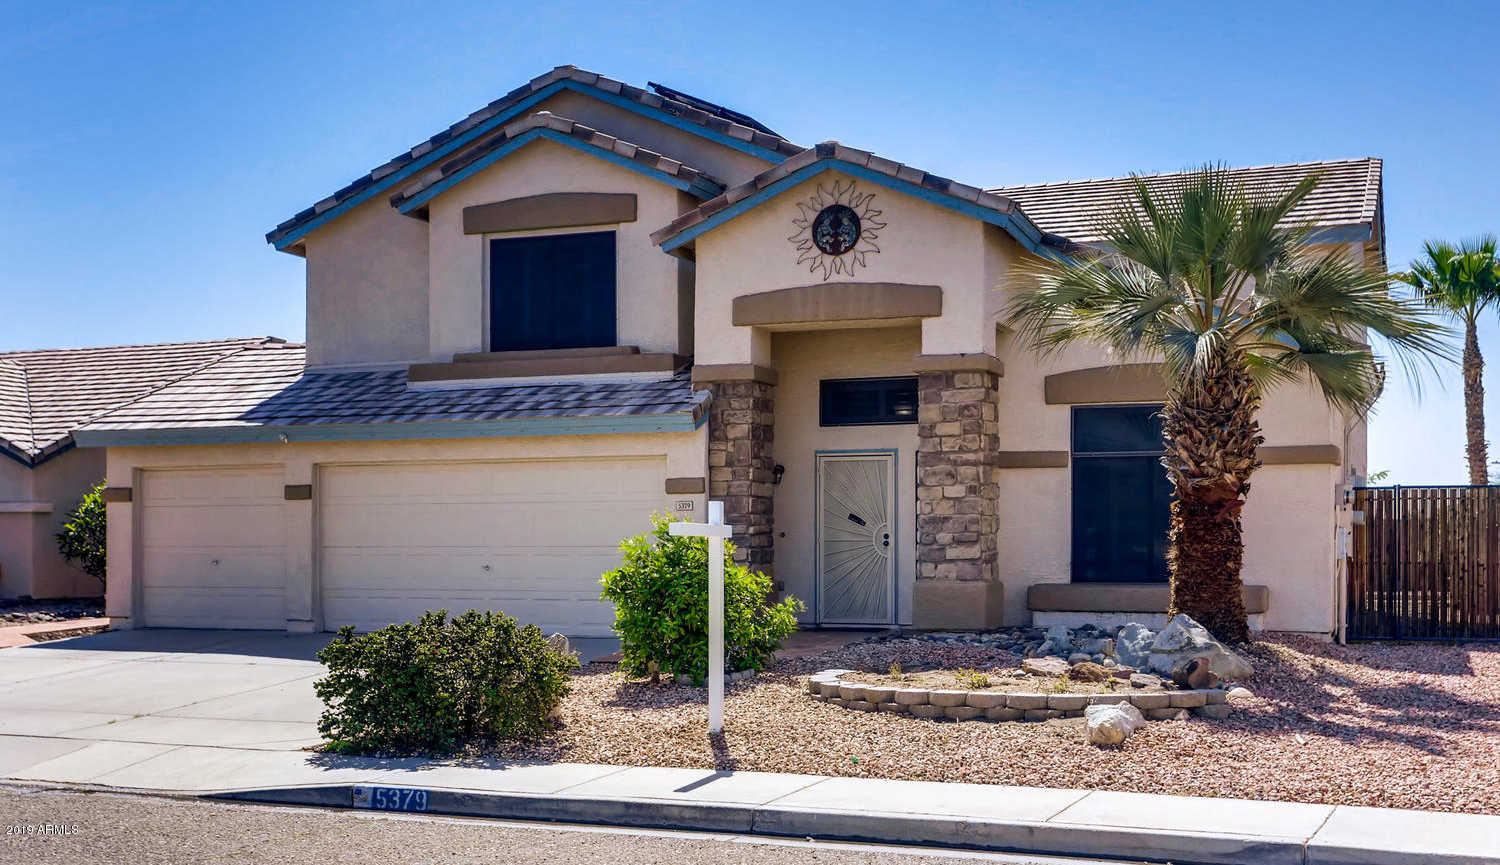 $350,000 - 4Br/3Ba - Home for Sale in Union Hills 2, Glendale